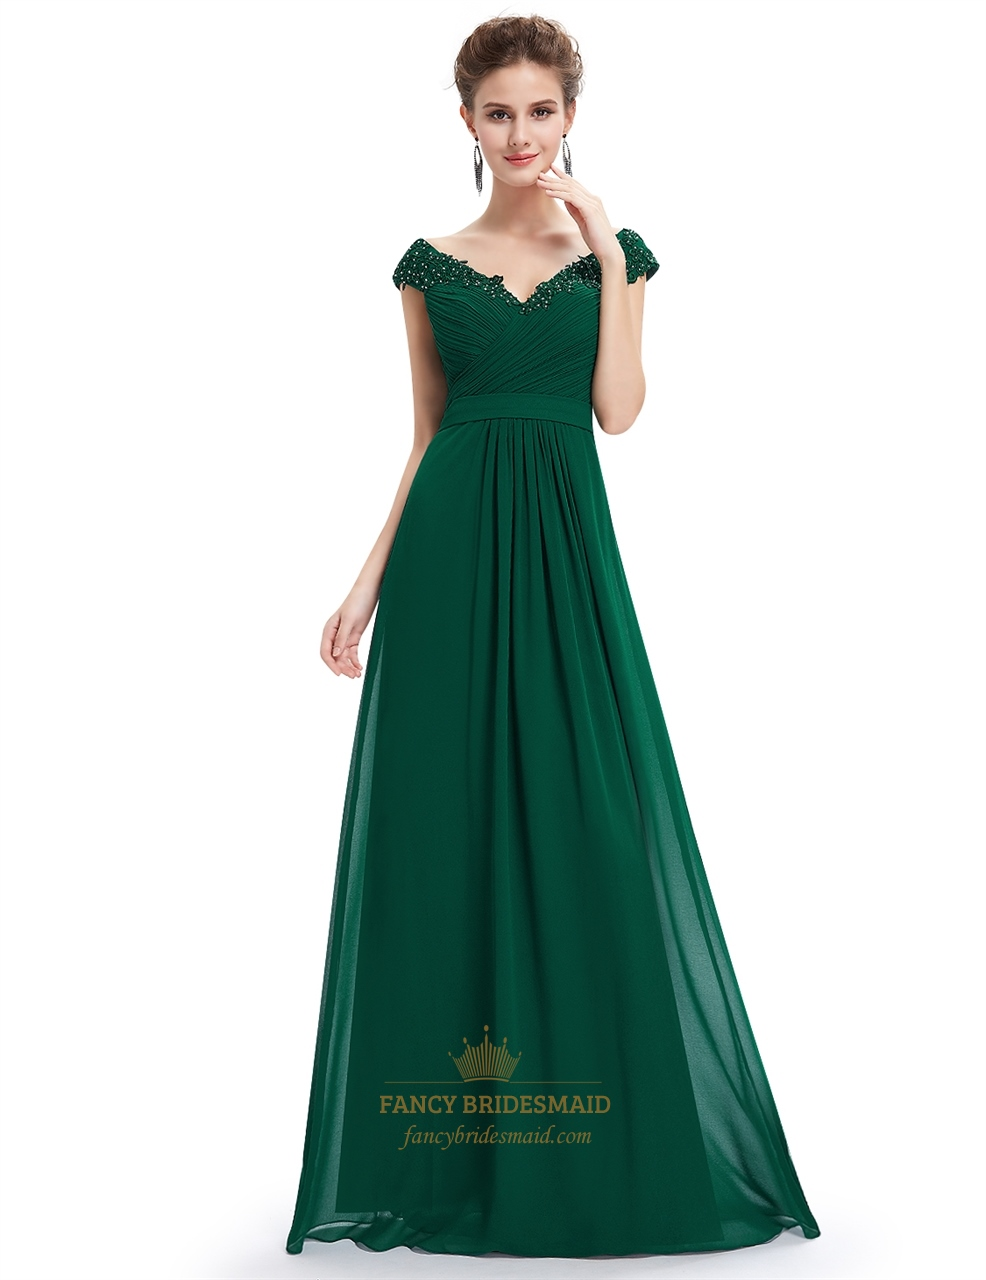 Emerald Green Chiffon Bridesmaid Dresses | Fancy Bridesmaid Dresses